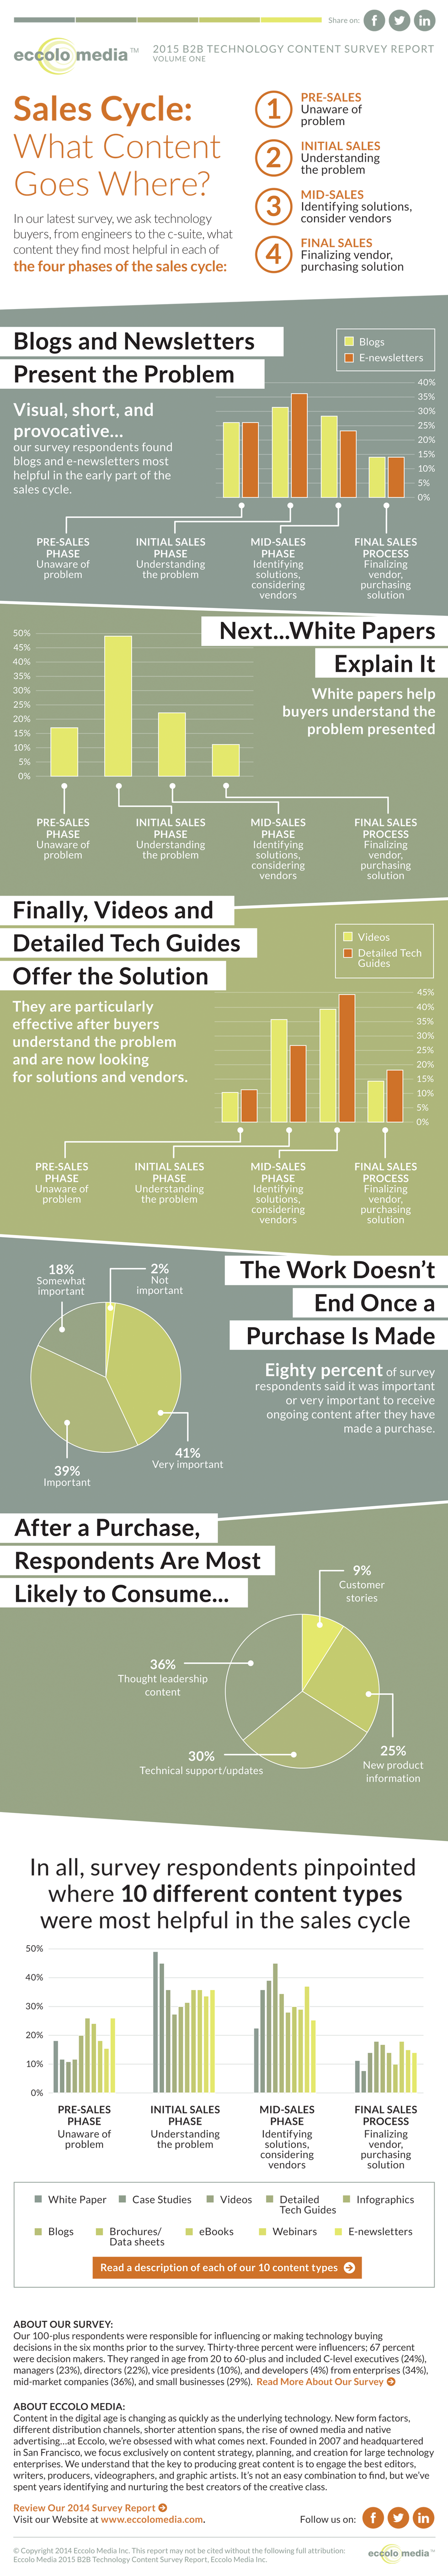 eccolo_buying_cycle_infographic-FINAL